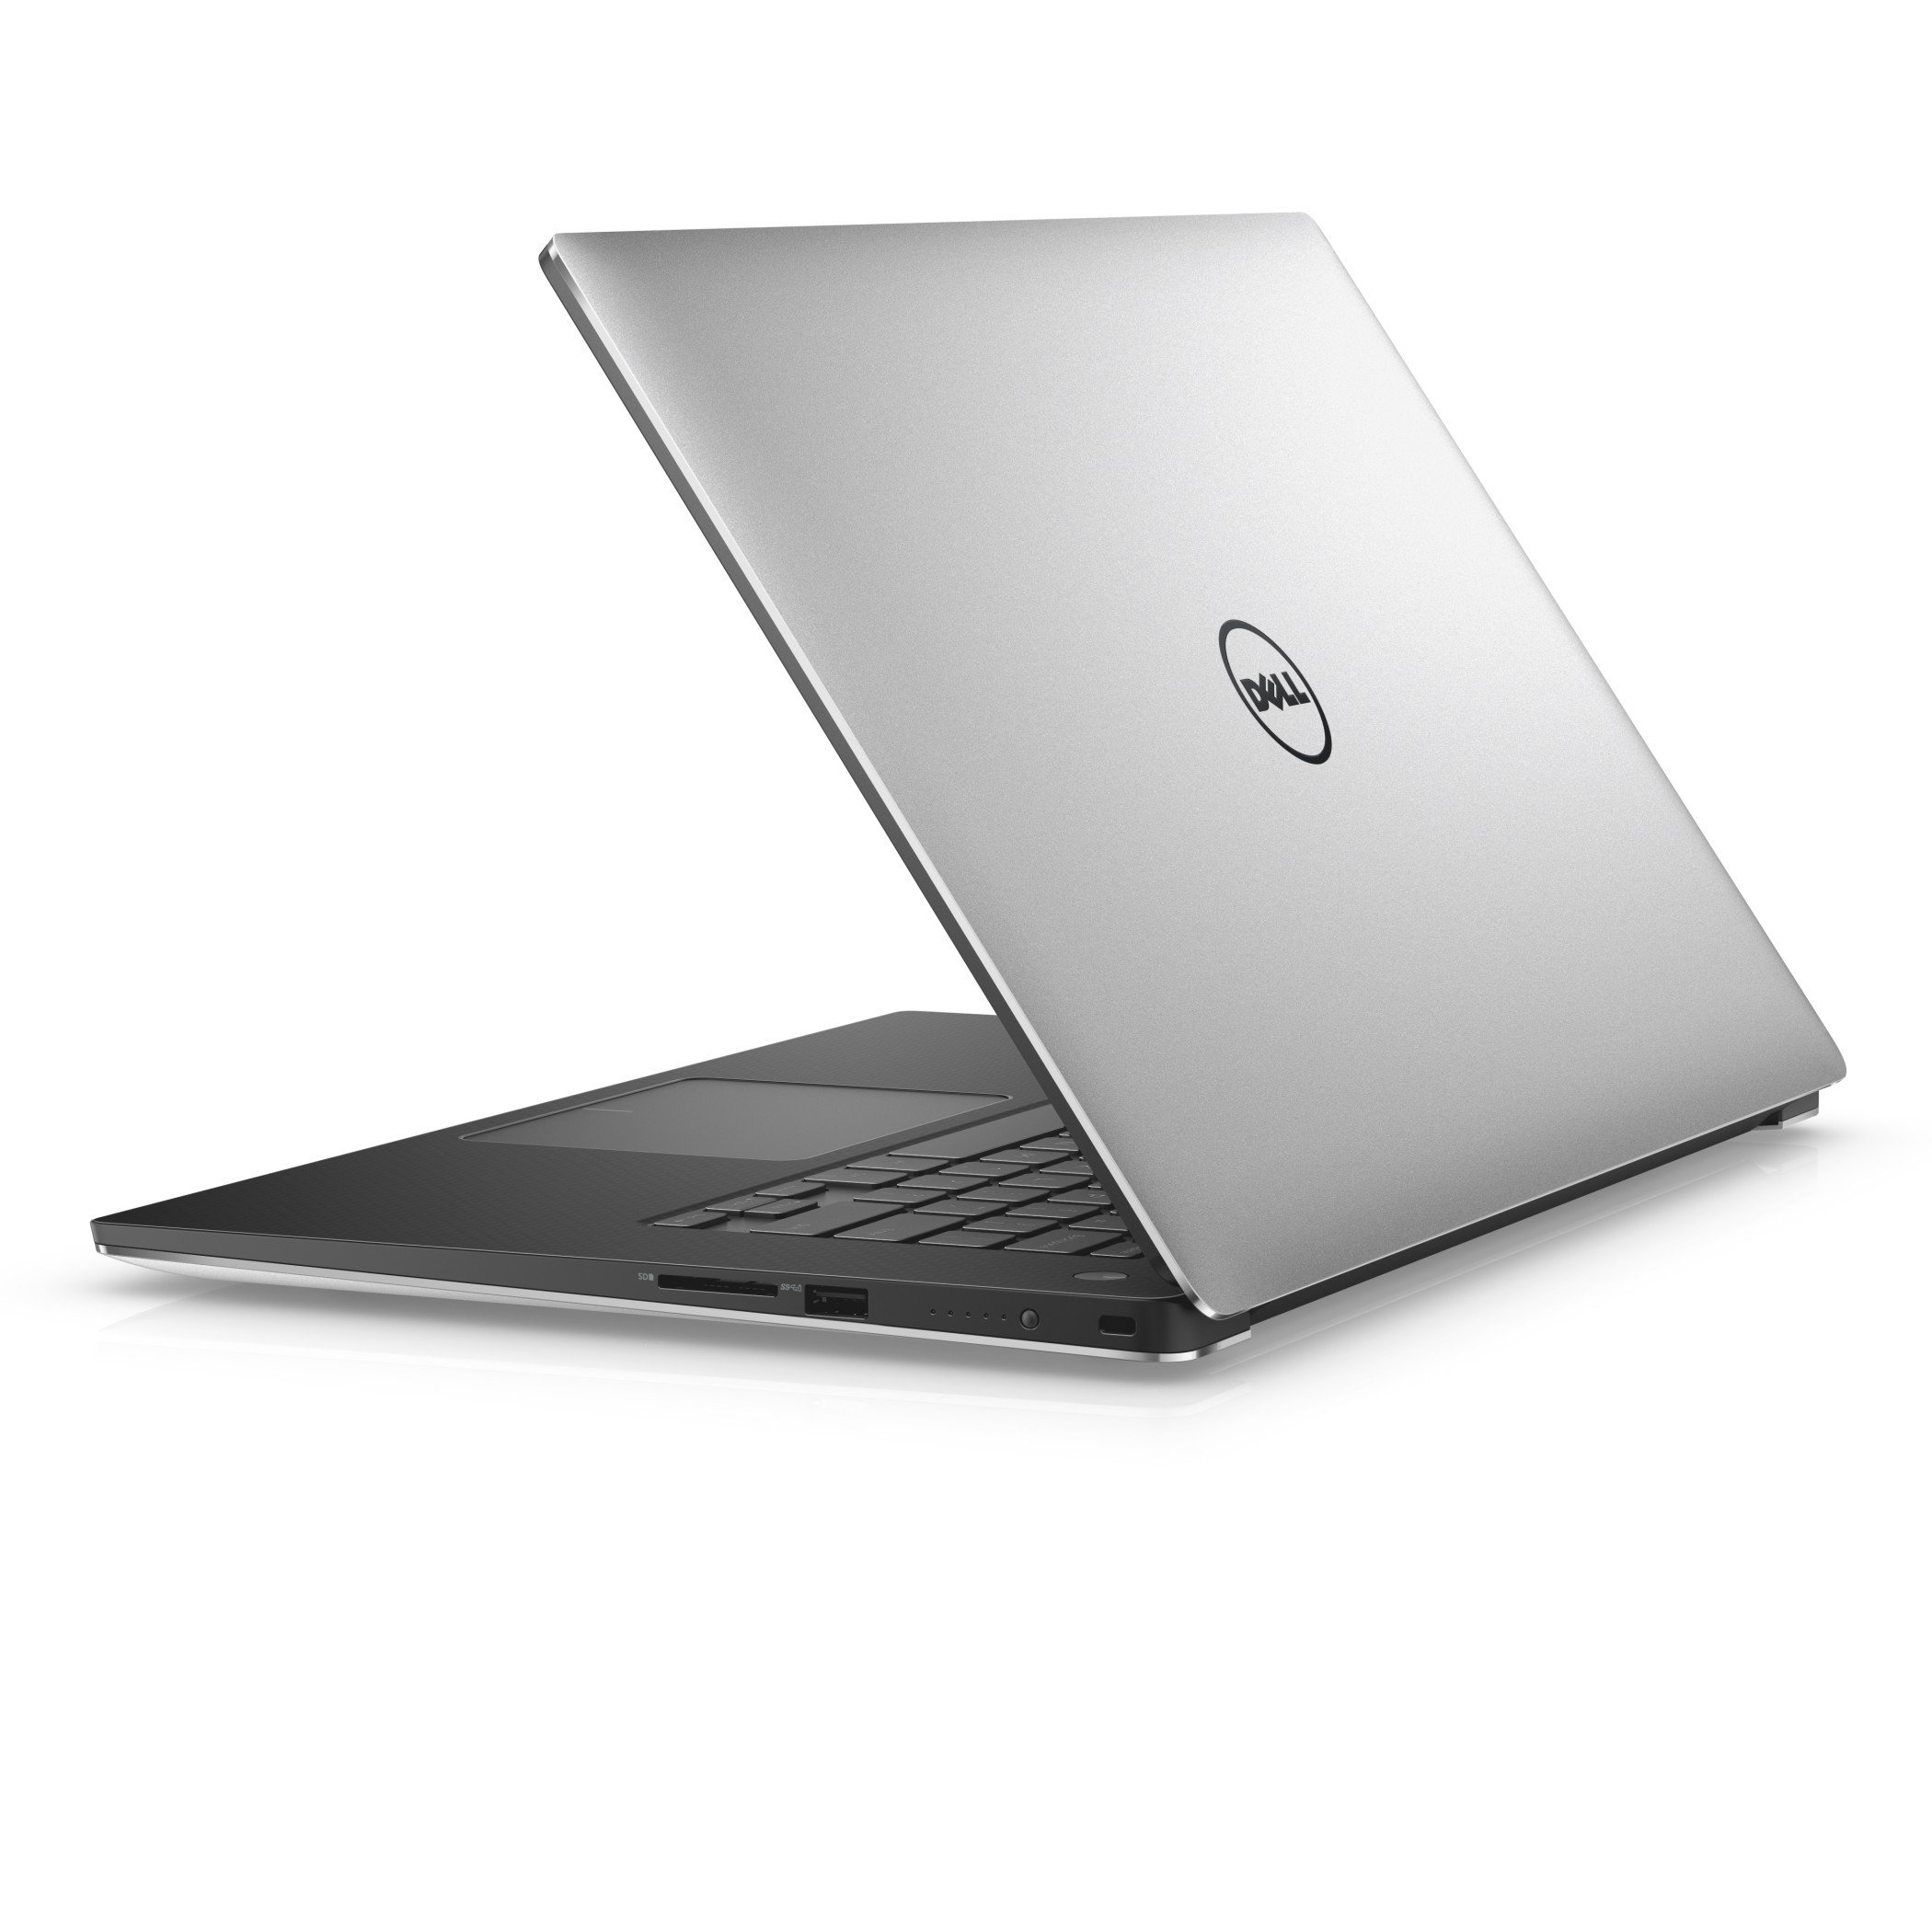 Dell Precision M5520 Intel Core i7-7820HQ X4 2.9GHz 32GB 1TB SSD, Silver (Renewed)